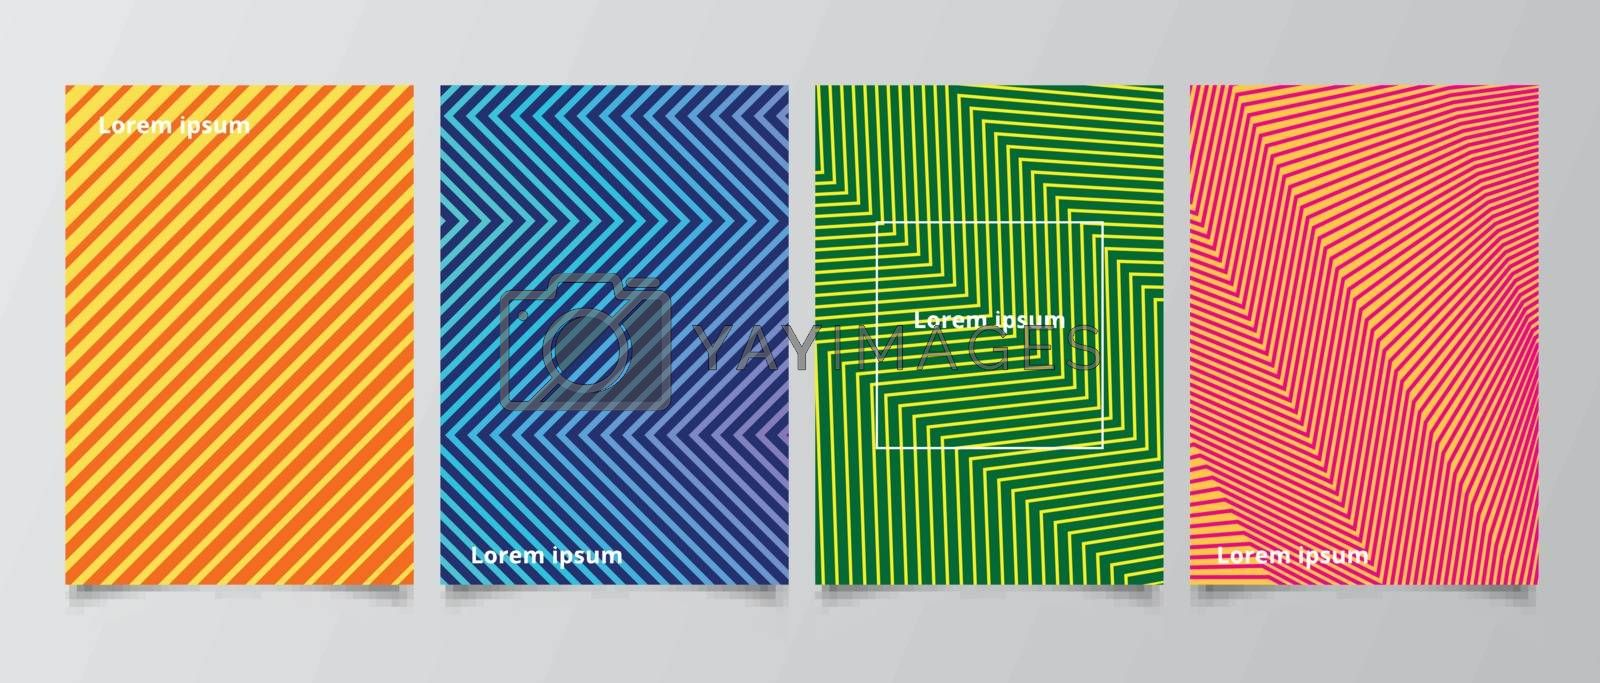 Template minimal covers design abstract pattern gradient background. Modern geometric design gradient lines shapes effect you can use for poster, brochure cover, template presentation or leaflet